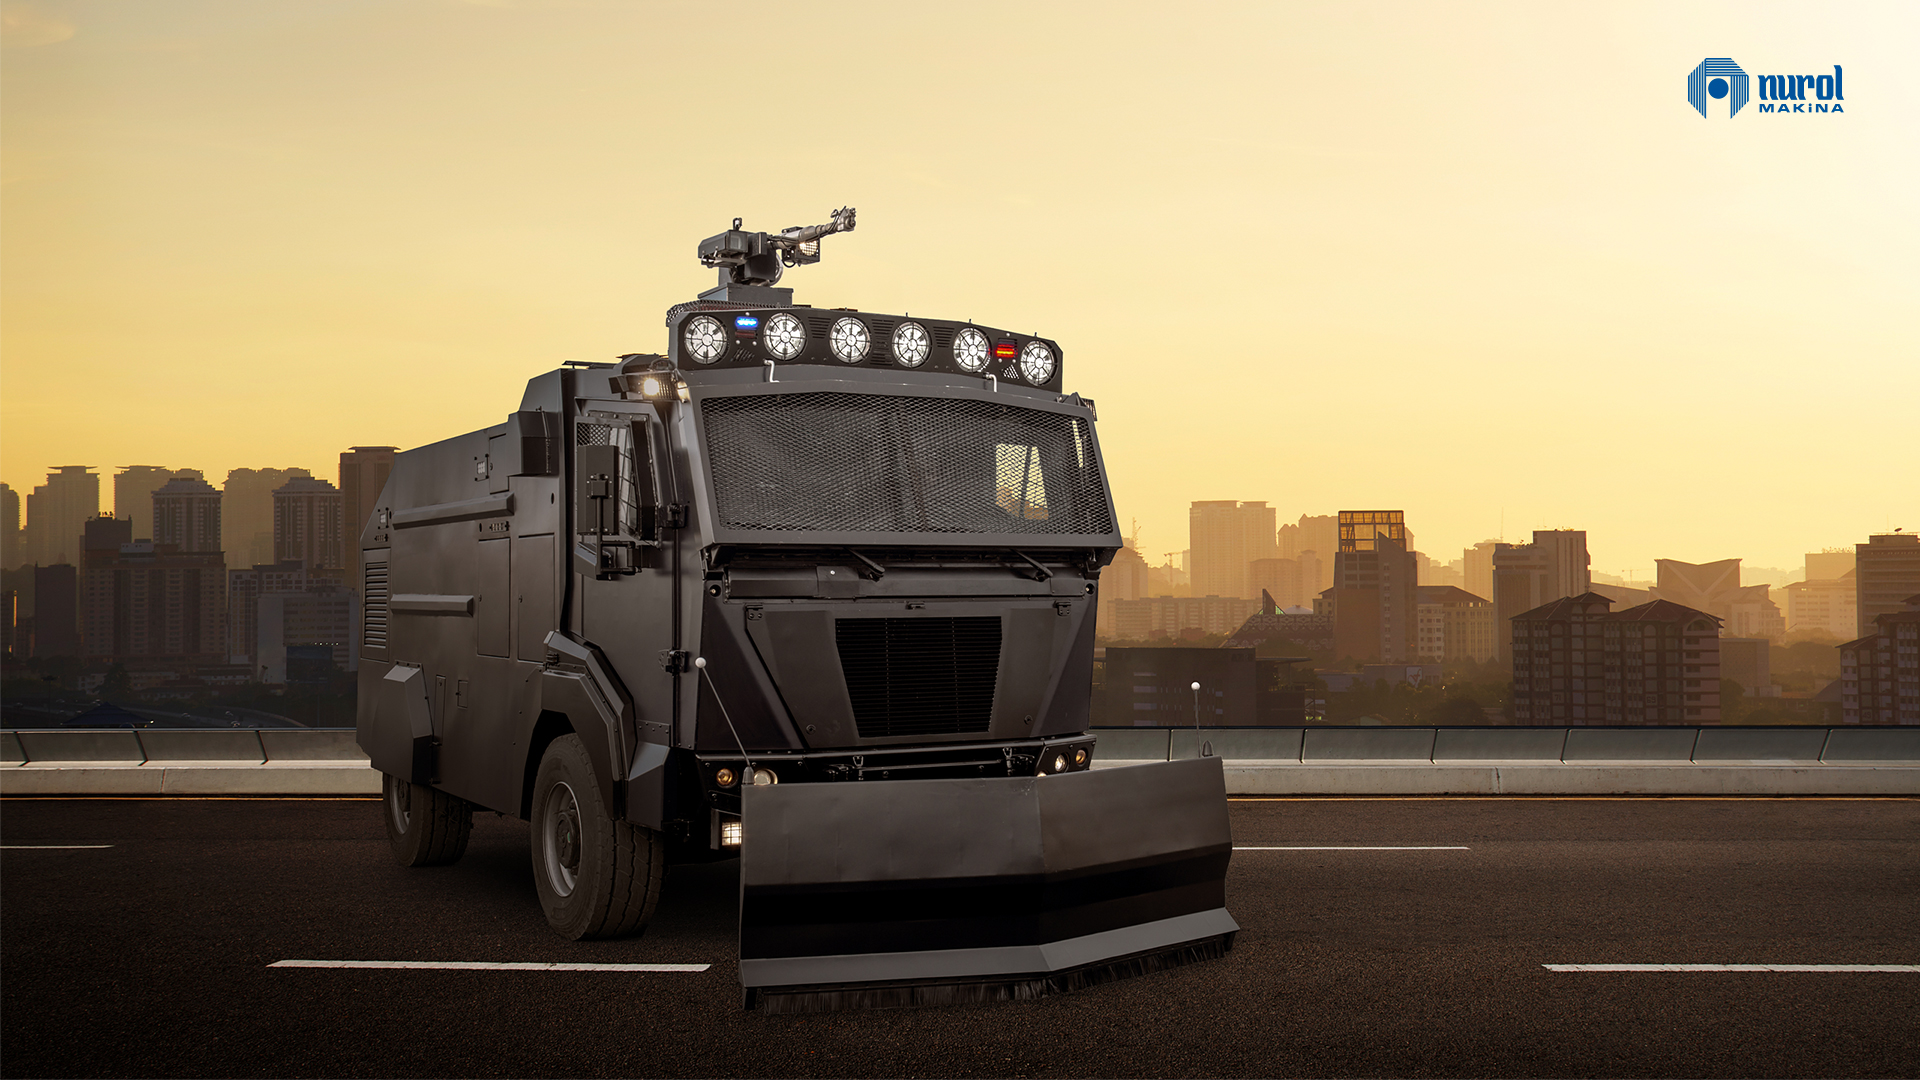 Nurol Makina Exports Ejder TOMA Anti-Riot Vehicles to Chile